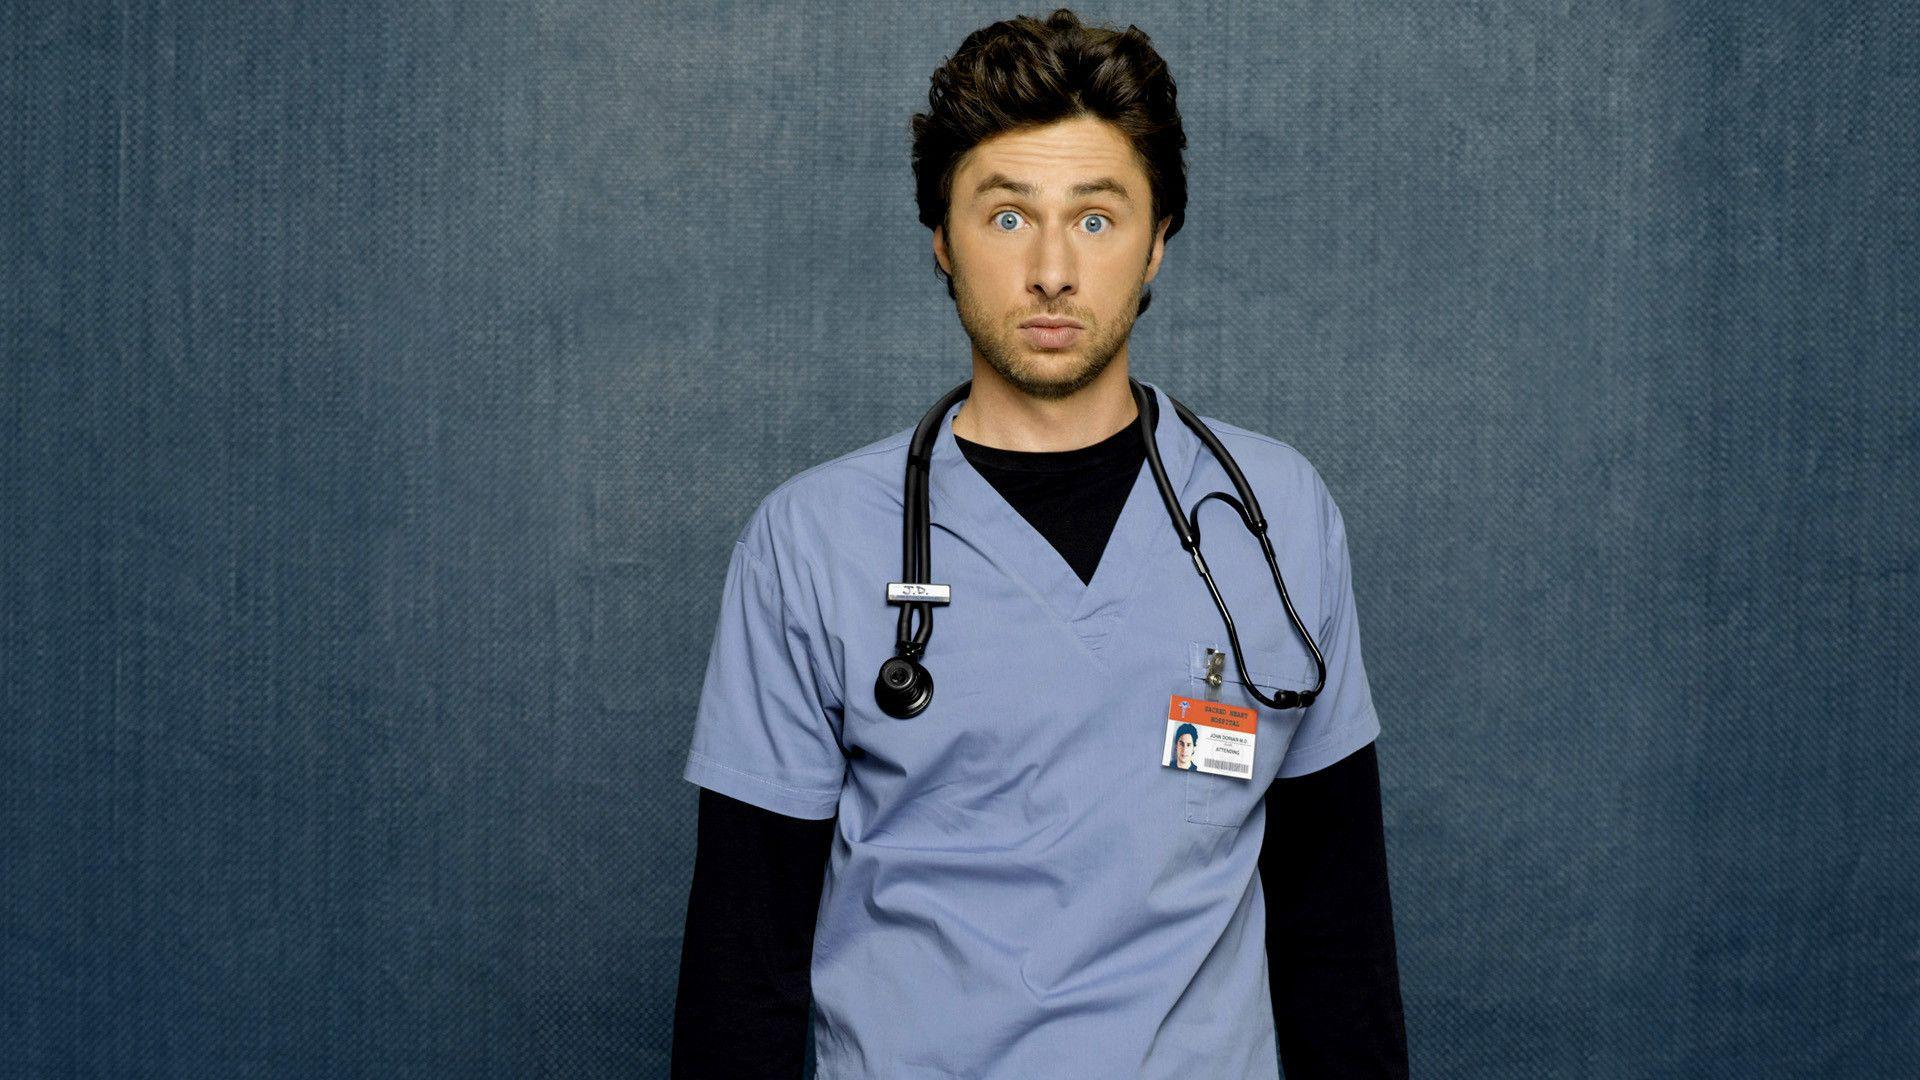 Scrubs Wallpapers, Pictures, Images